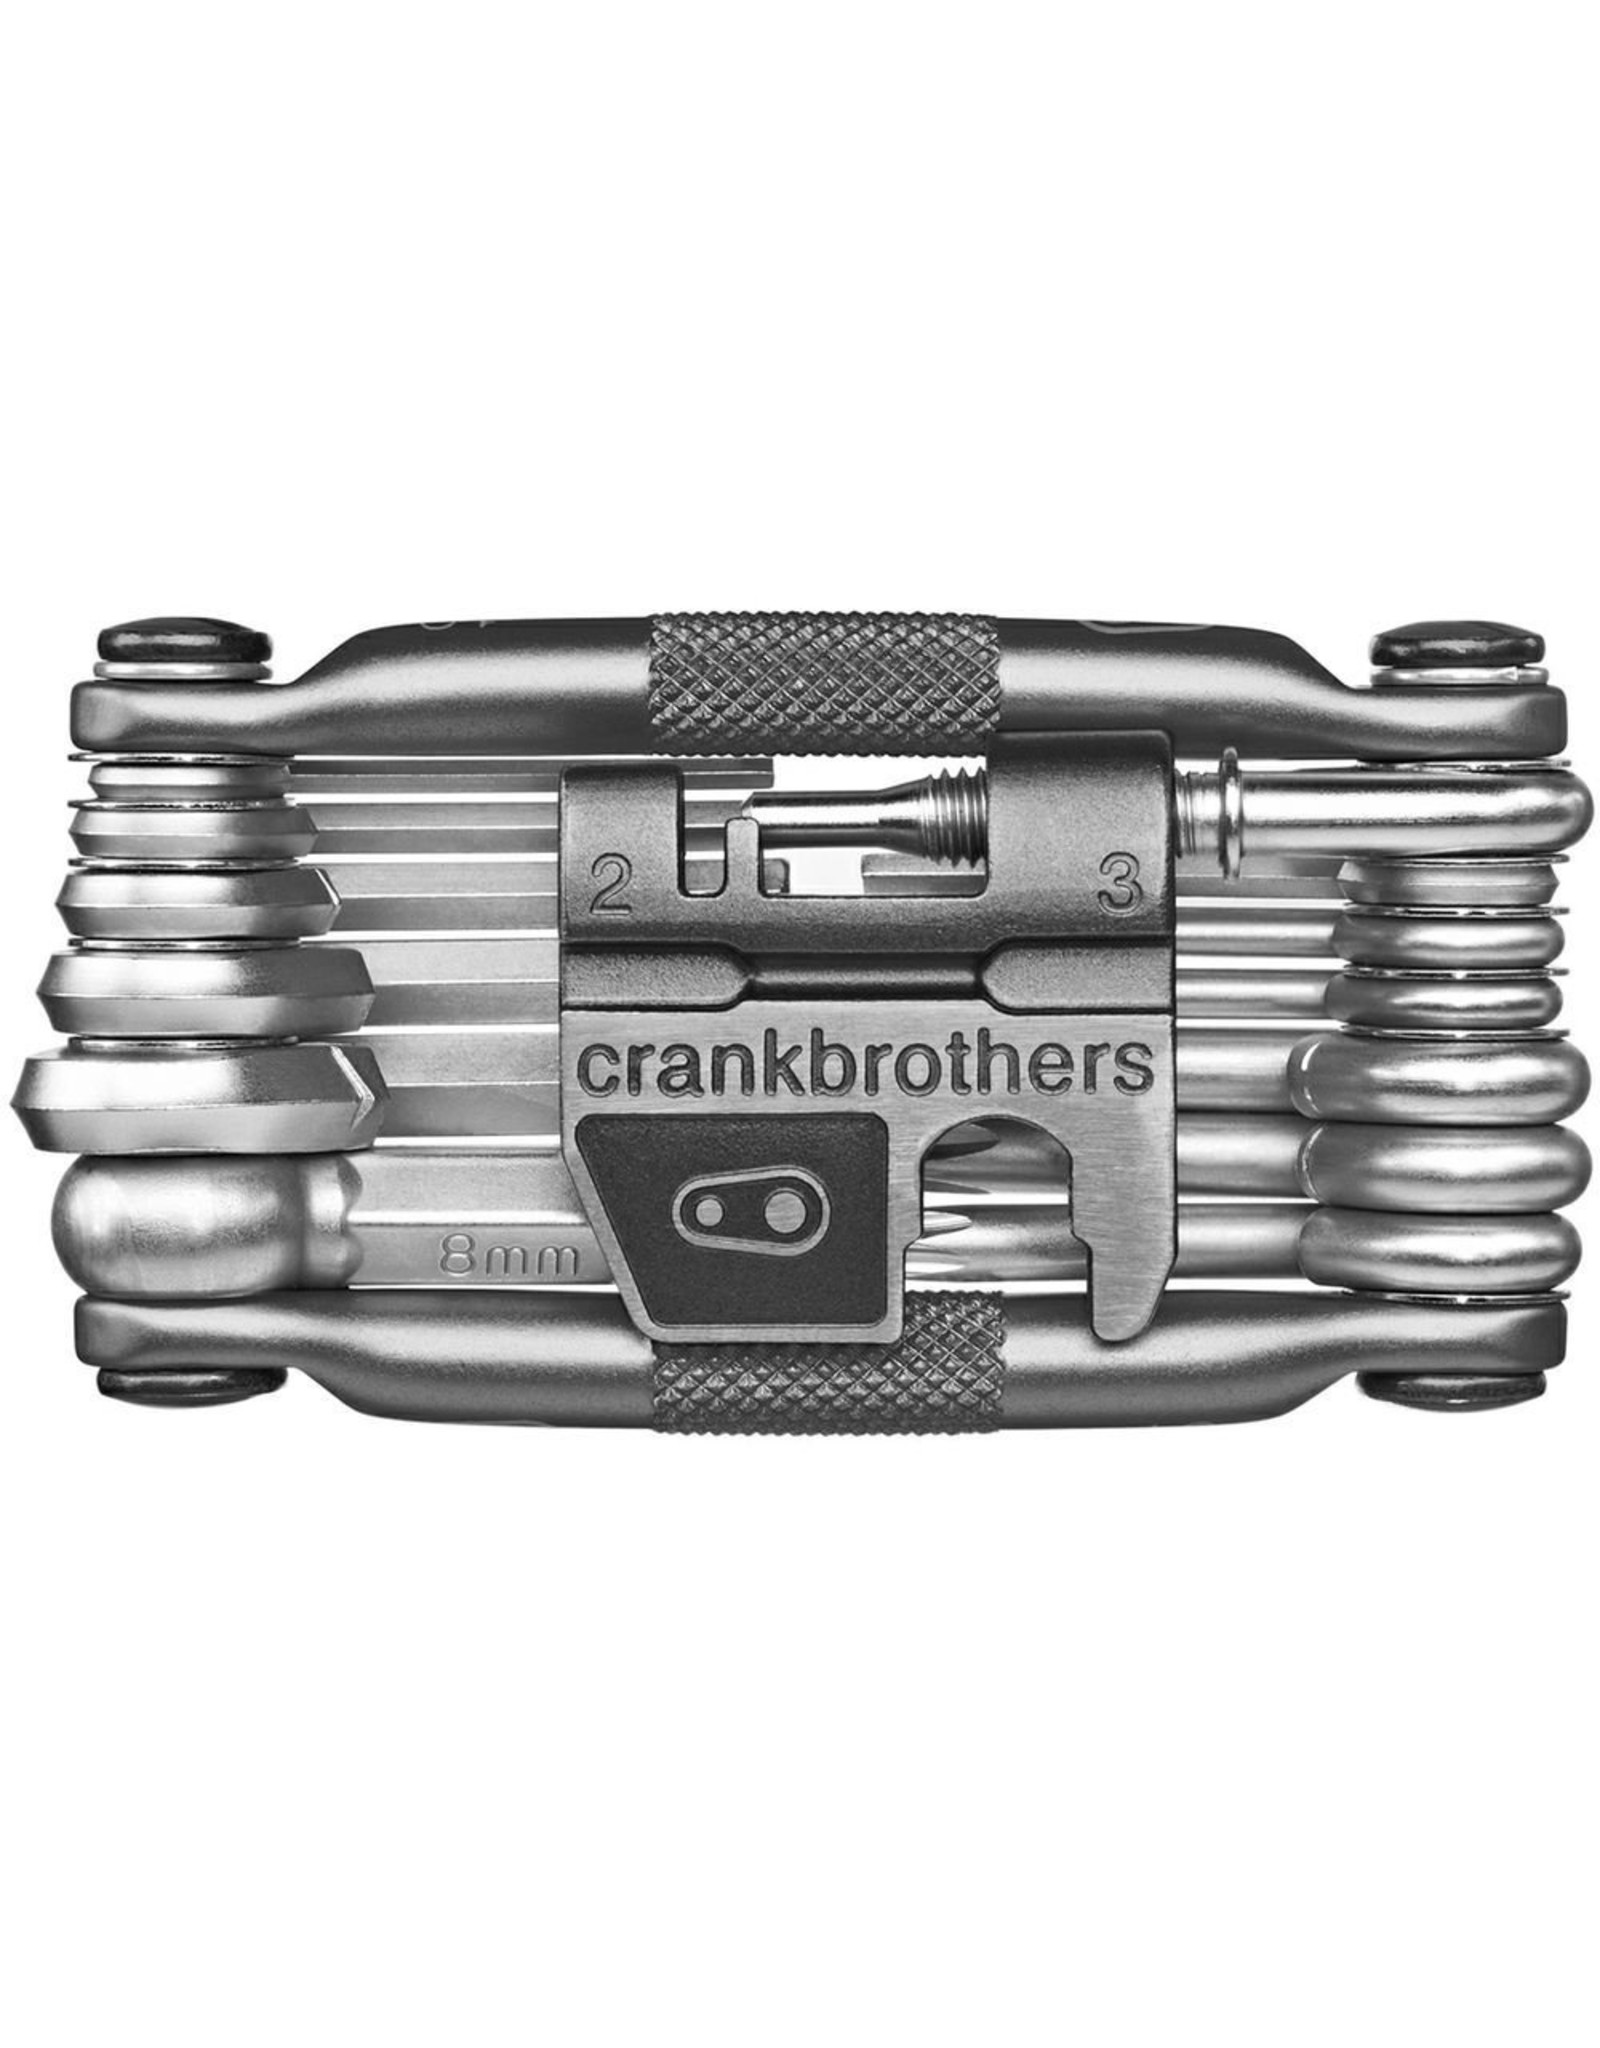 Crank Brothers Crank Brothers Multi-19 Mini Tool with Flask, Nickel